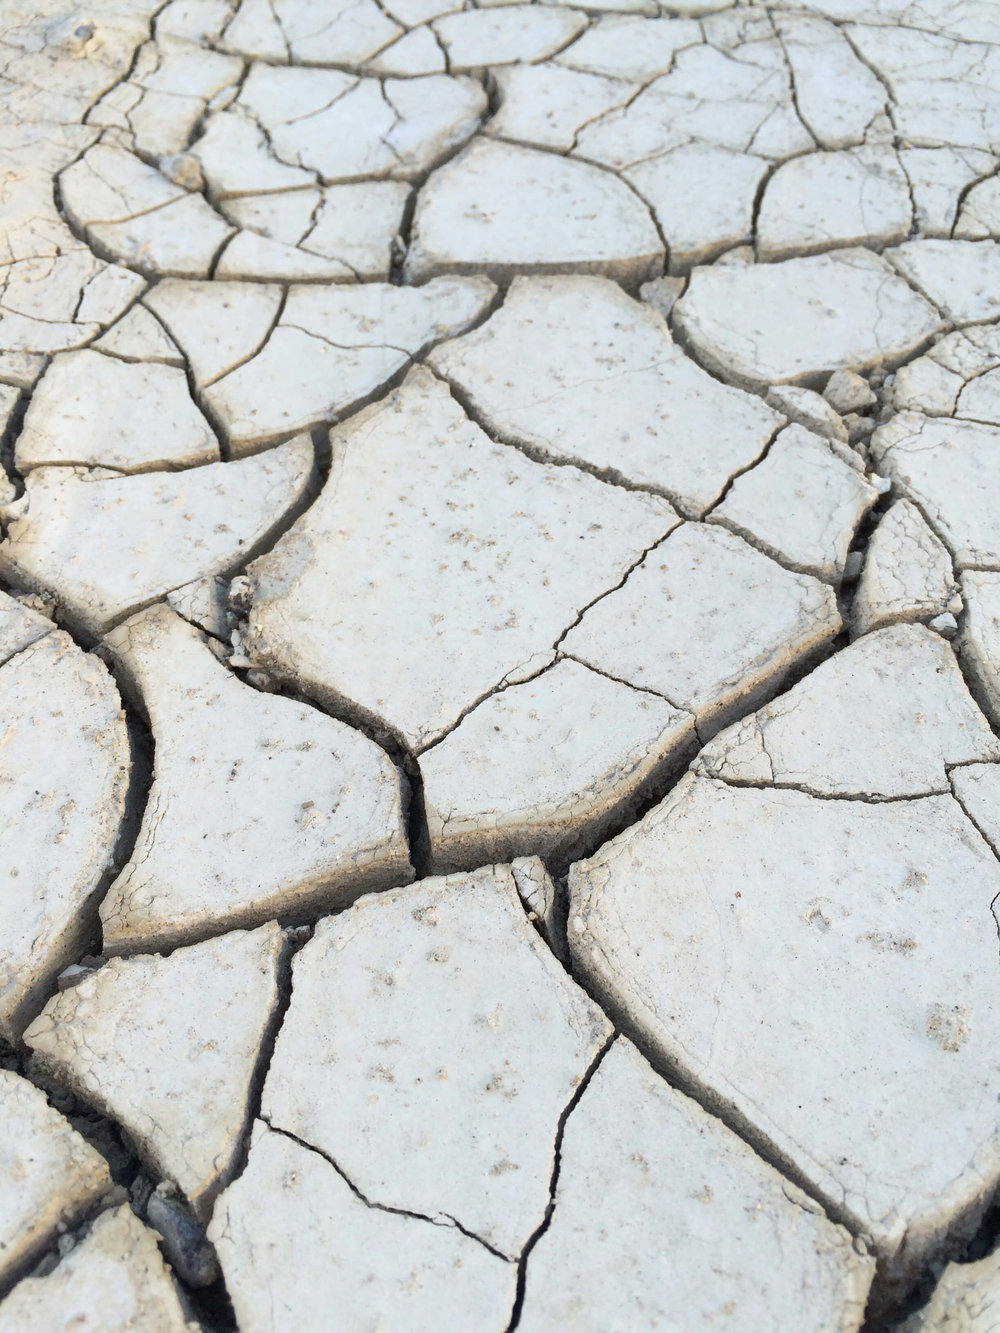 Cracked Desert Earth - ©️ Nicole Atkins